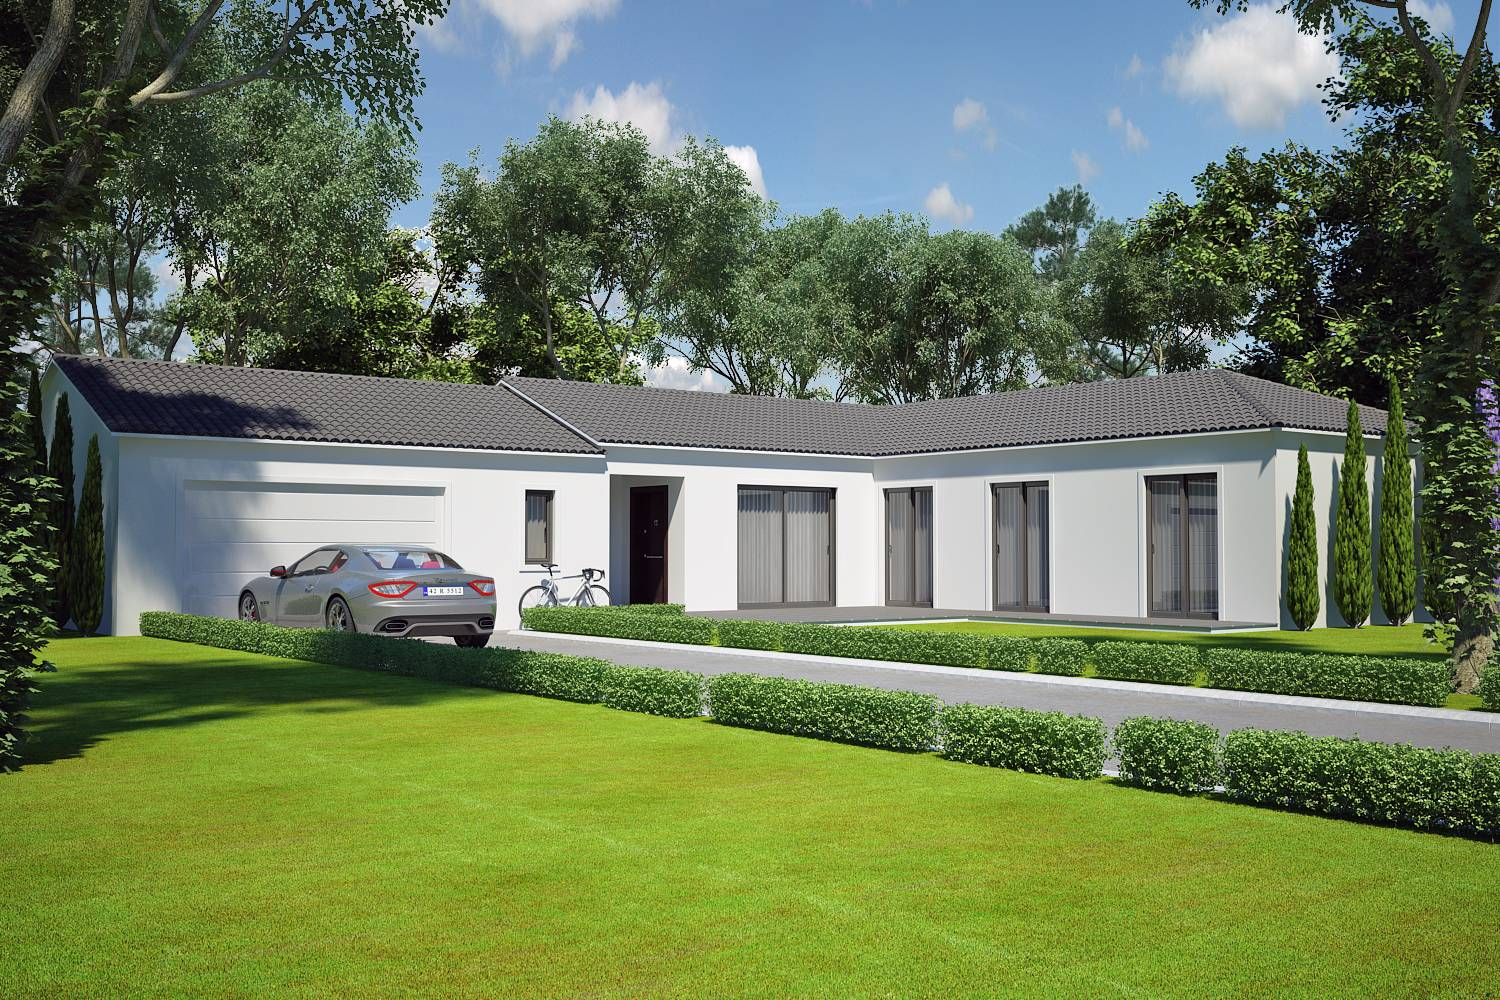 Villa contemporaine 110 m2 plain pied mod le saphir for Modele maison plain pied contemporaine